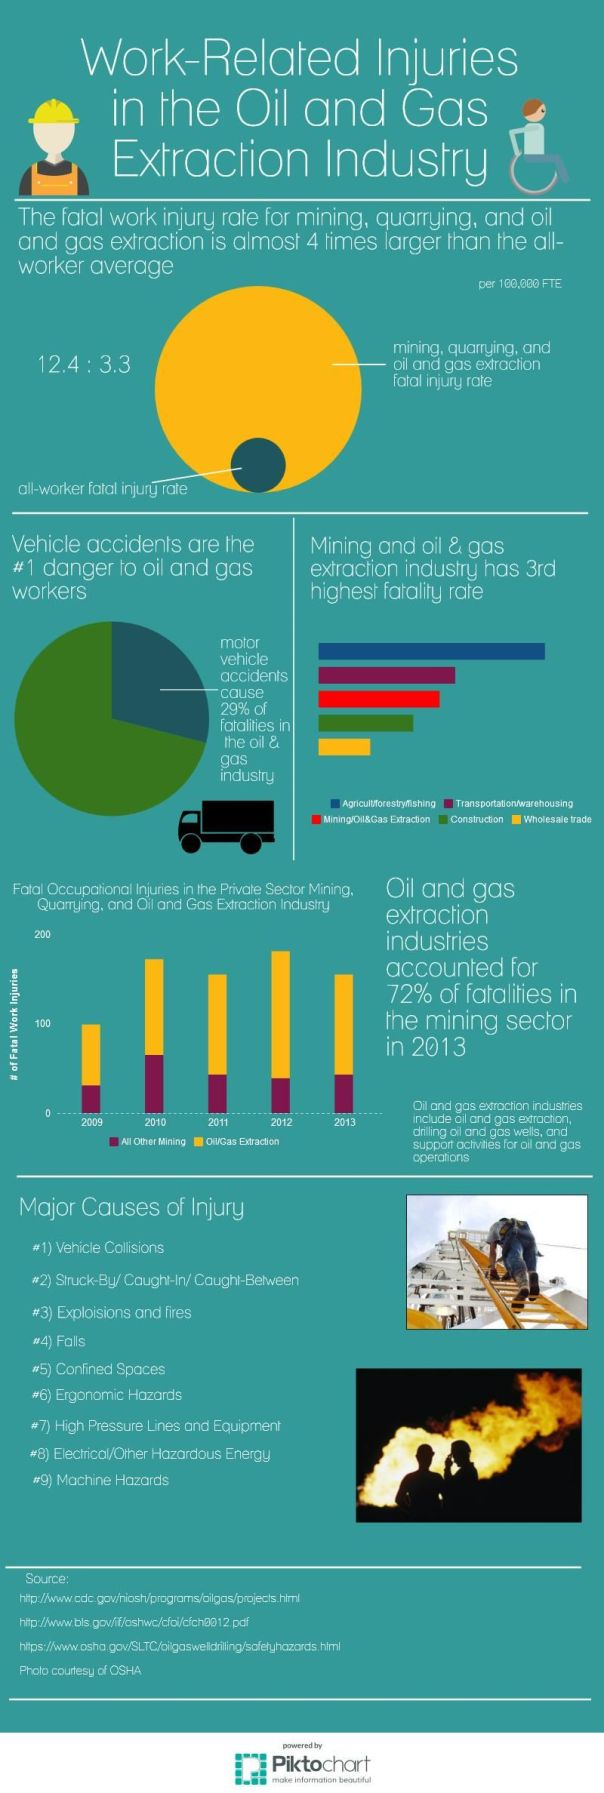 Injuries in Oil and Gas Exploration